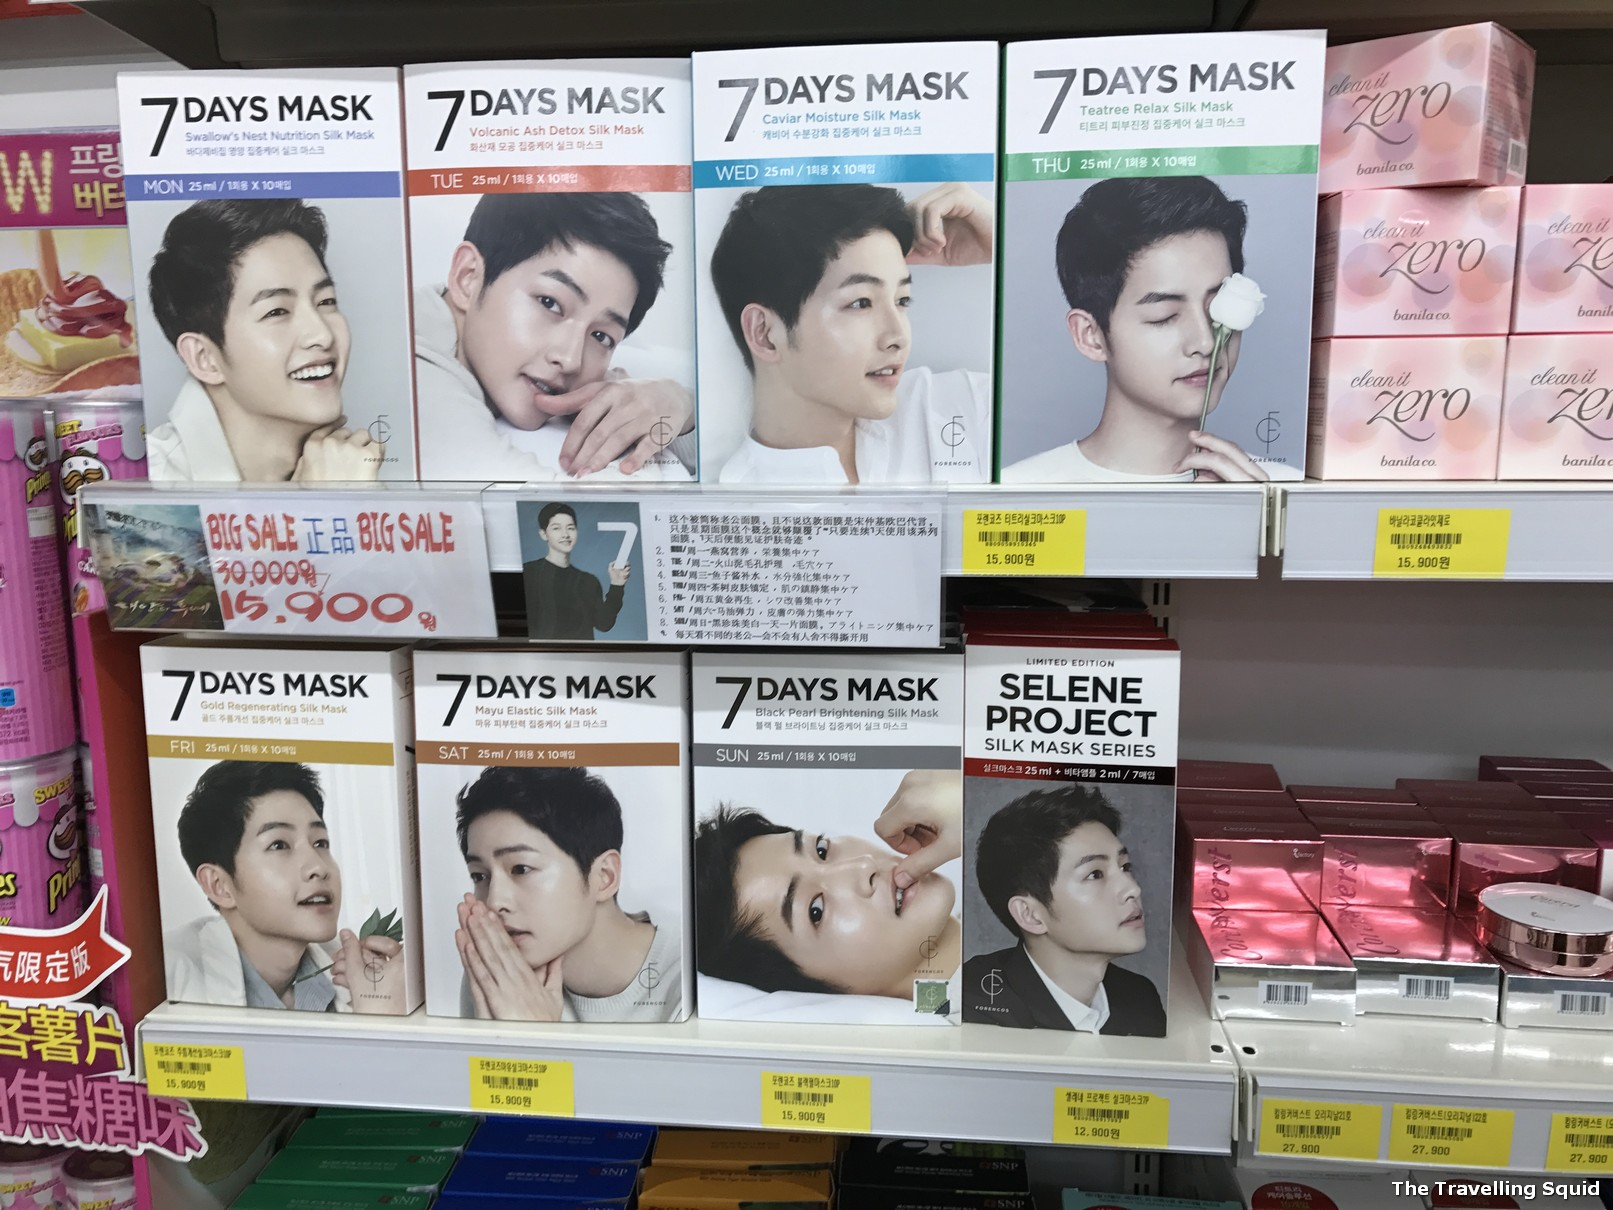 descendants of the sun face products